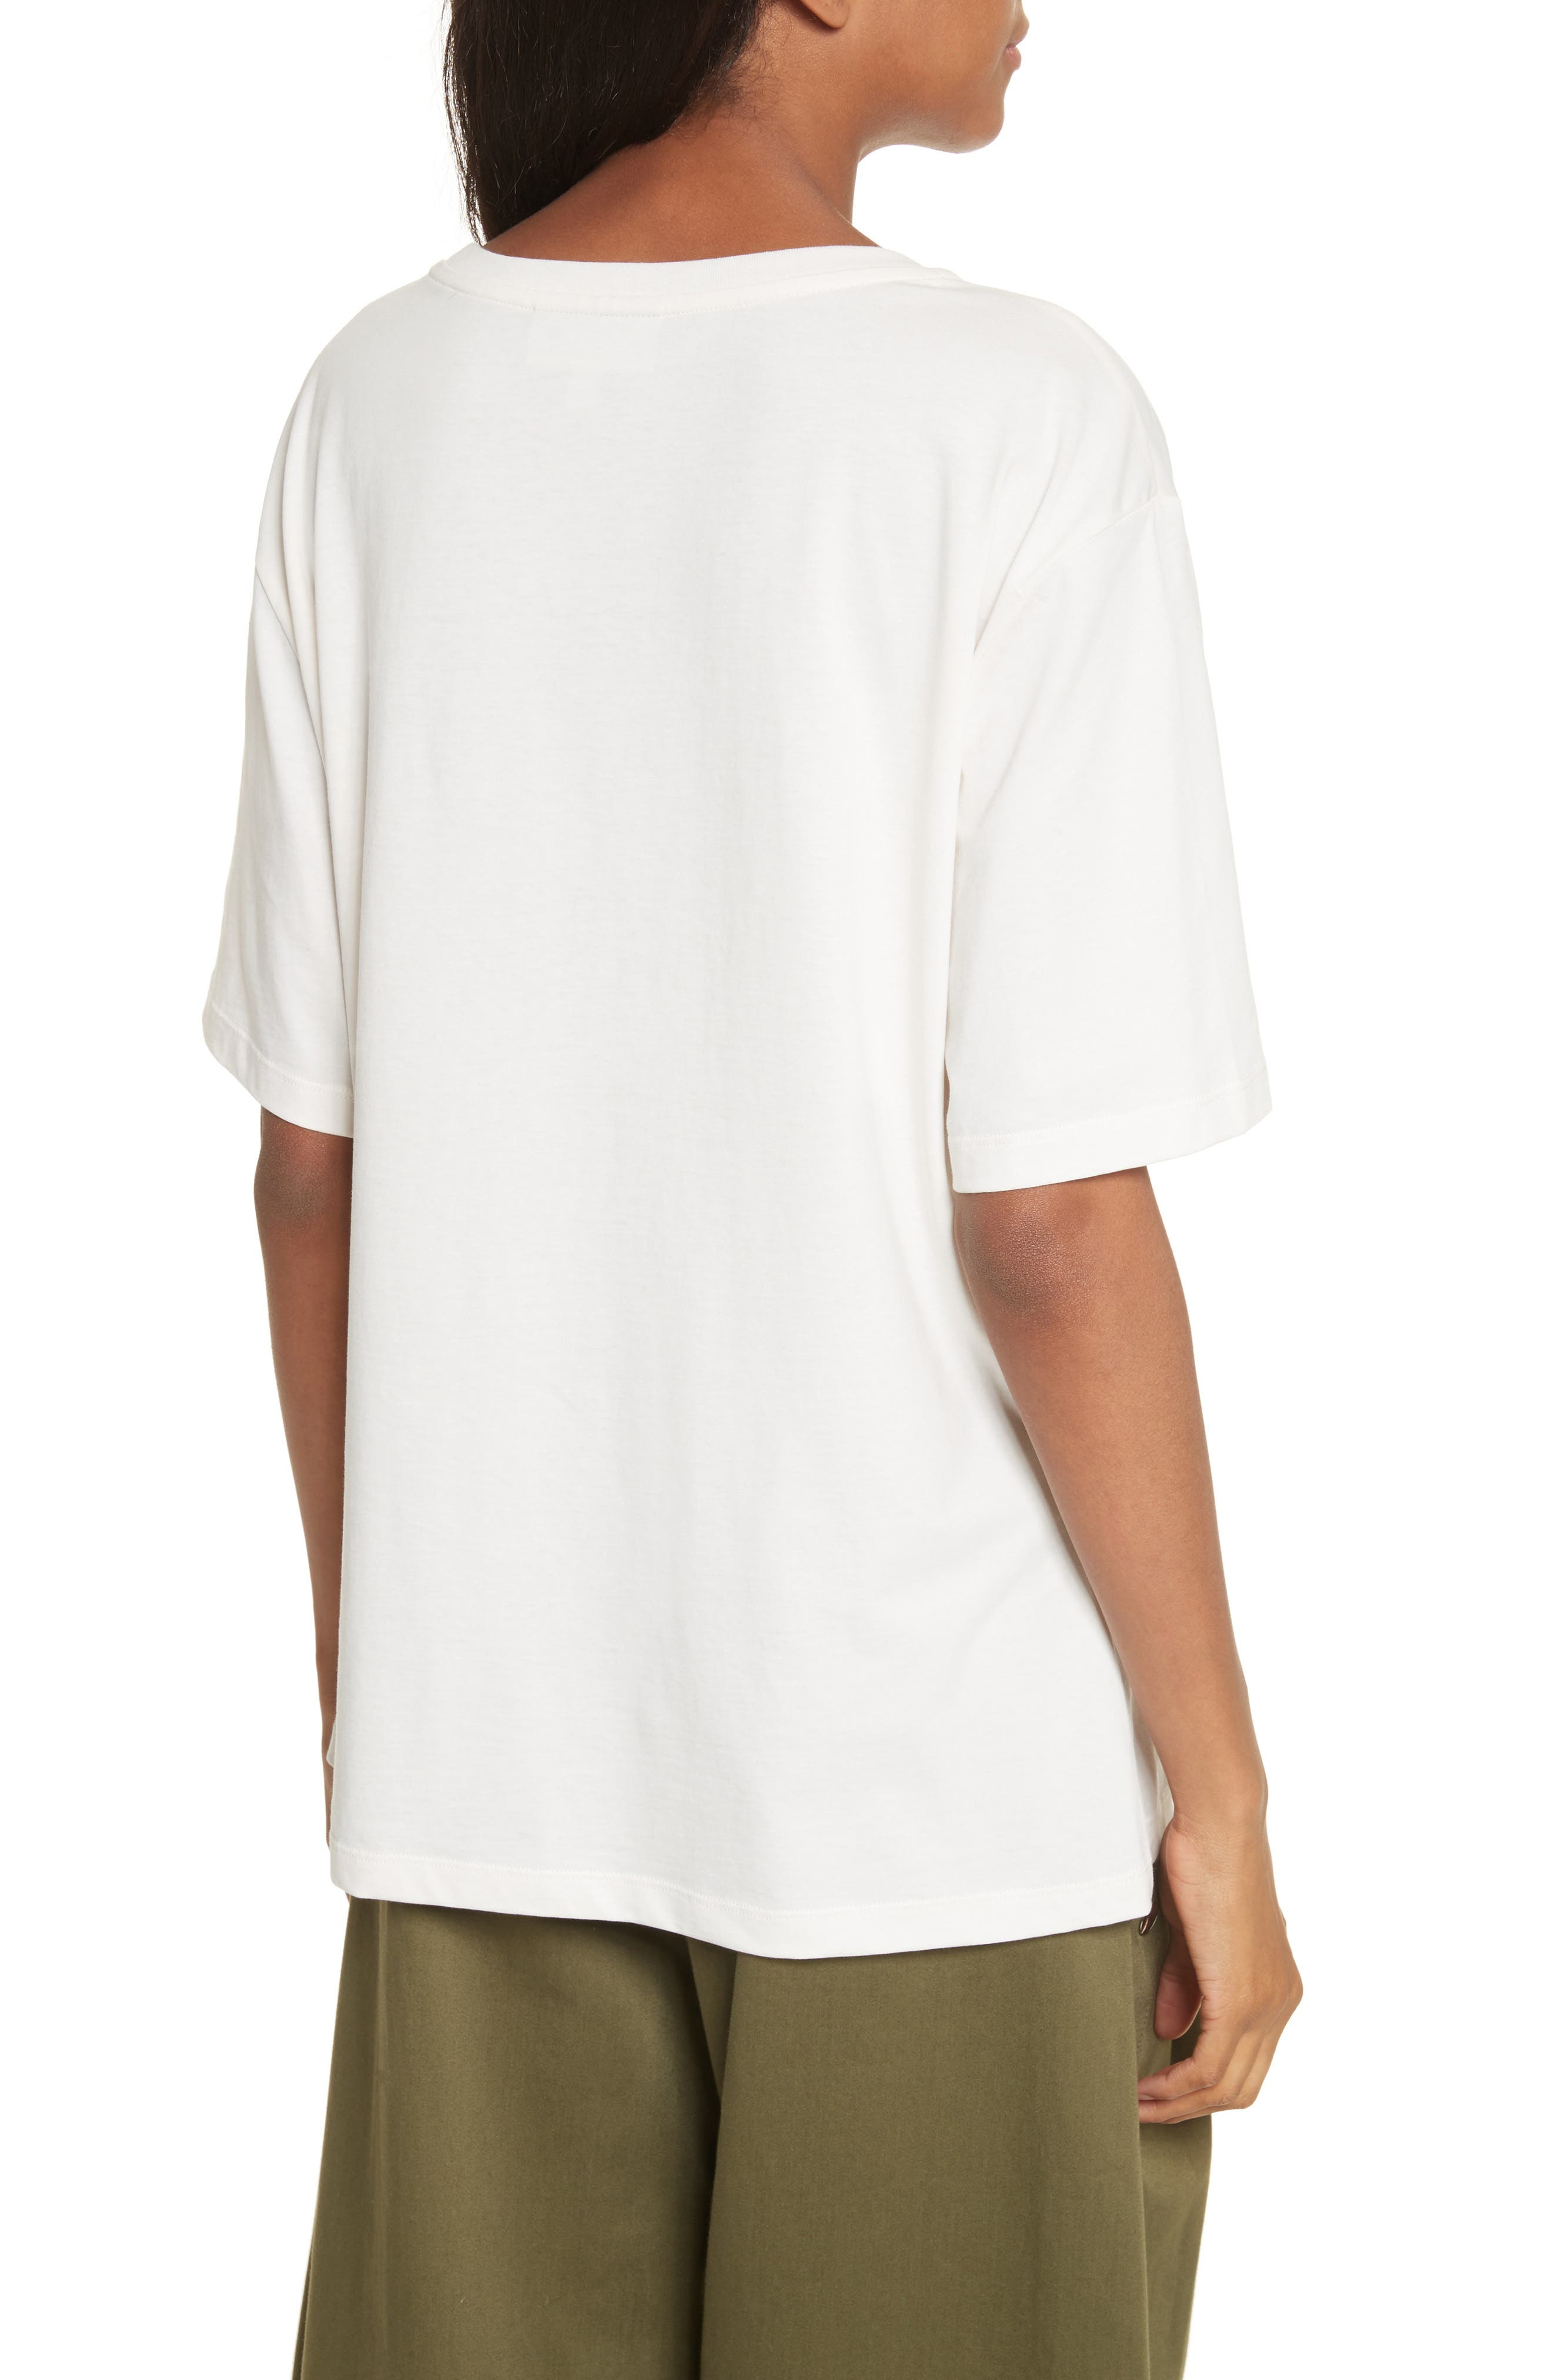 Everything I Like Graphic Tee,                             Alternate thumbnail 2, color,                             Off White